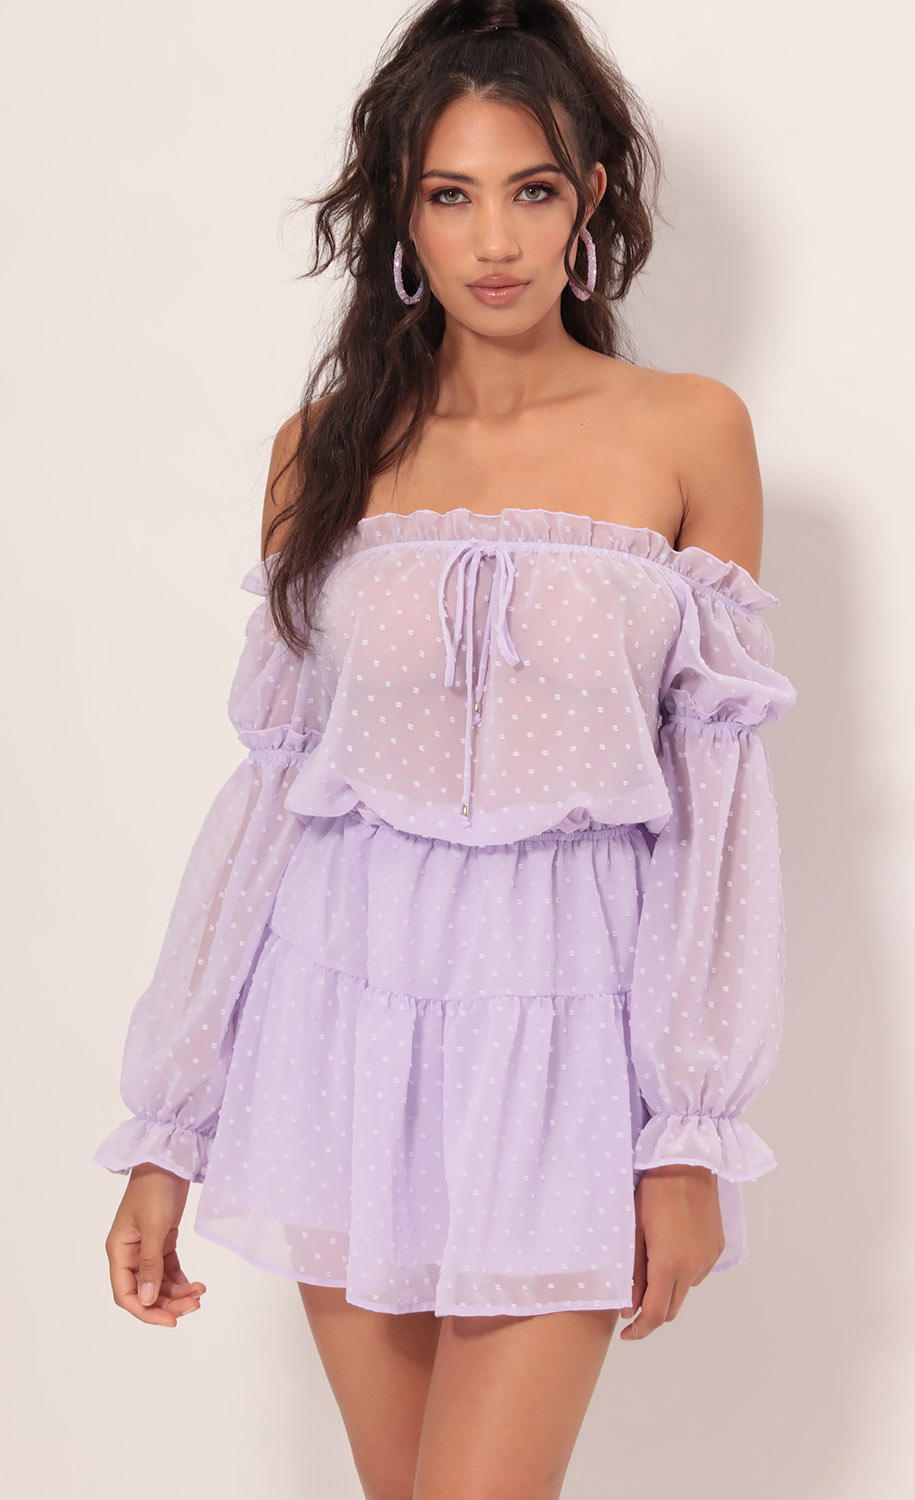 Wild Thoughts Off The Shoulder Dress in Lavender Dots